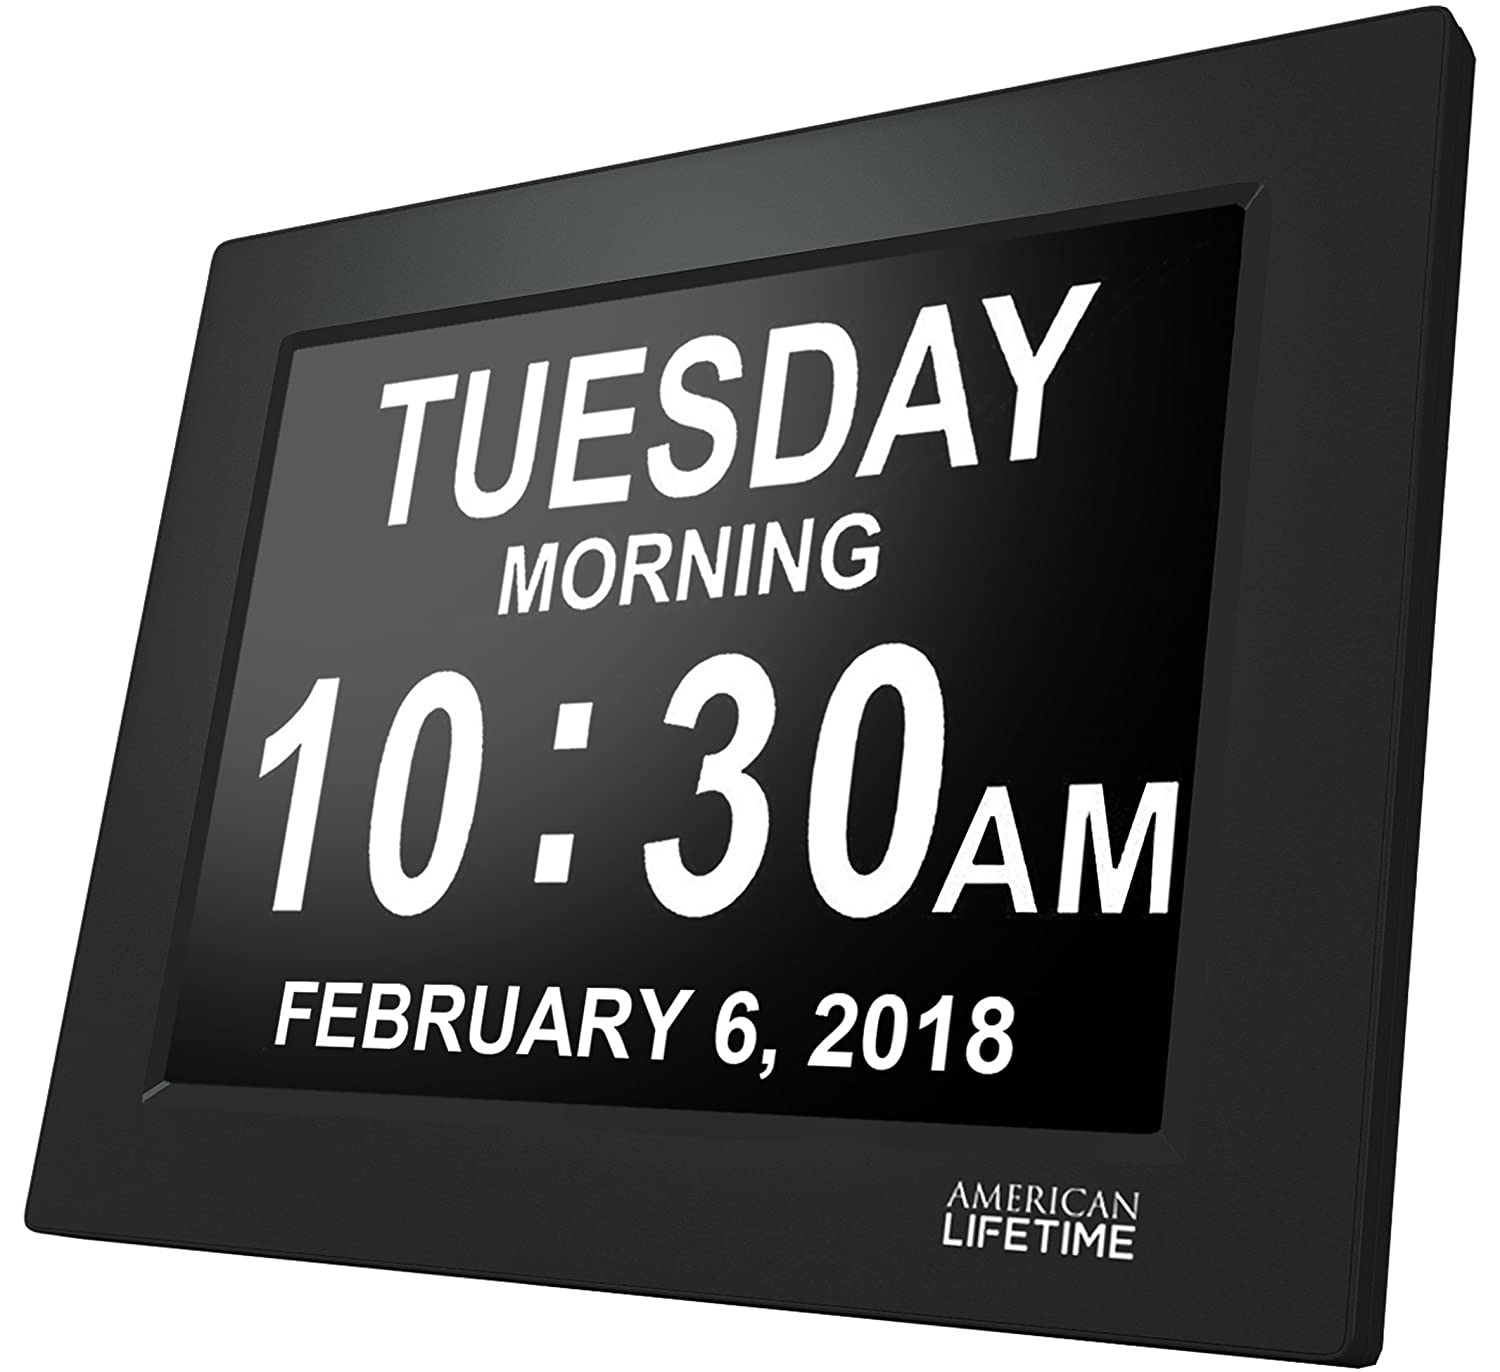 American Lifetime [Newest Version] Day Clock - Extra Large Impaired Vision Digital Clock with Battery Backup & 5 Alarm Options (Black) DCC